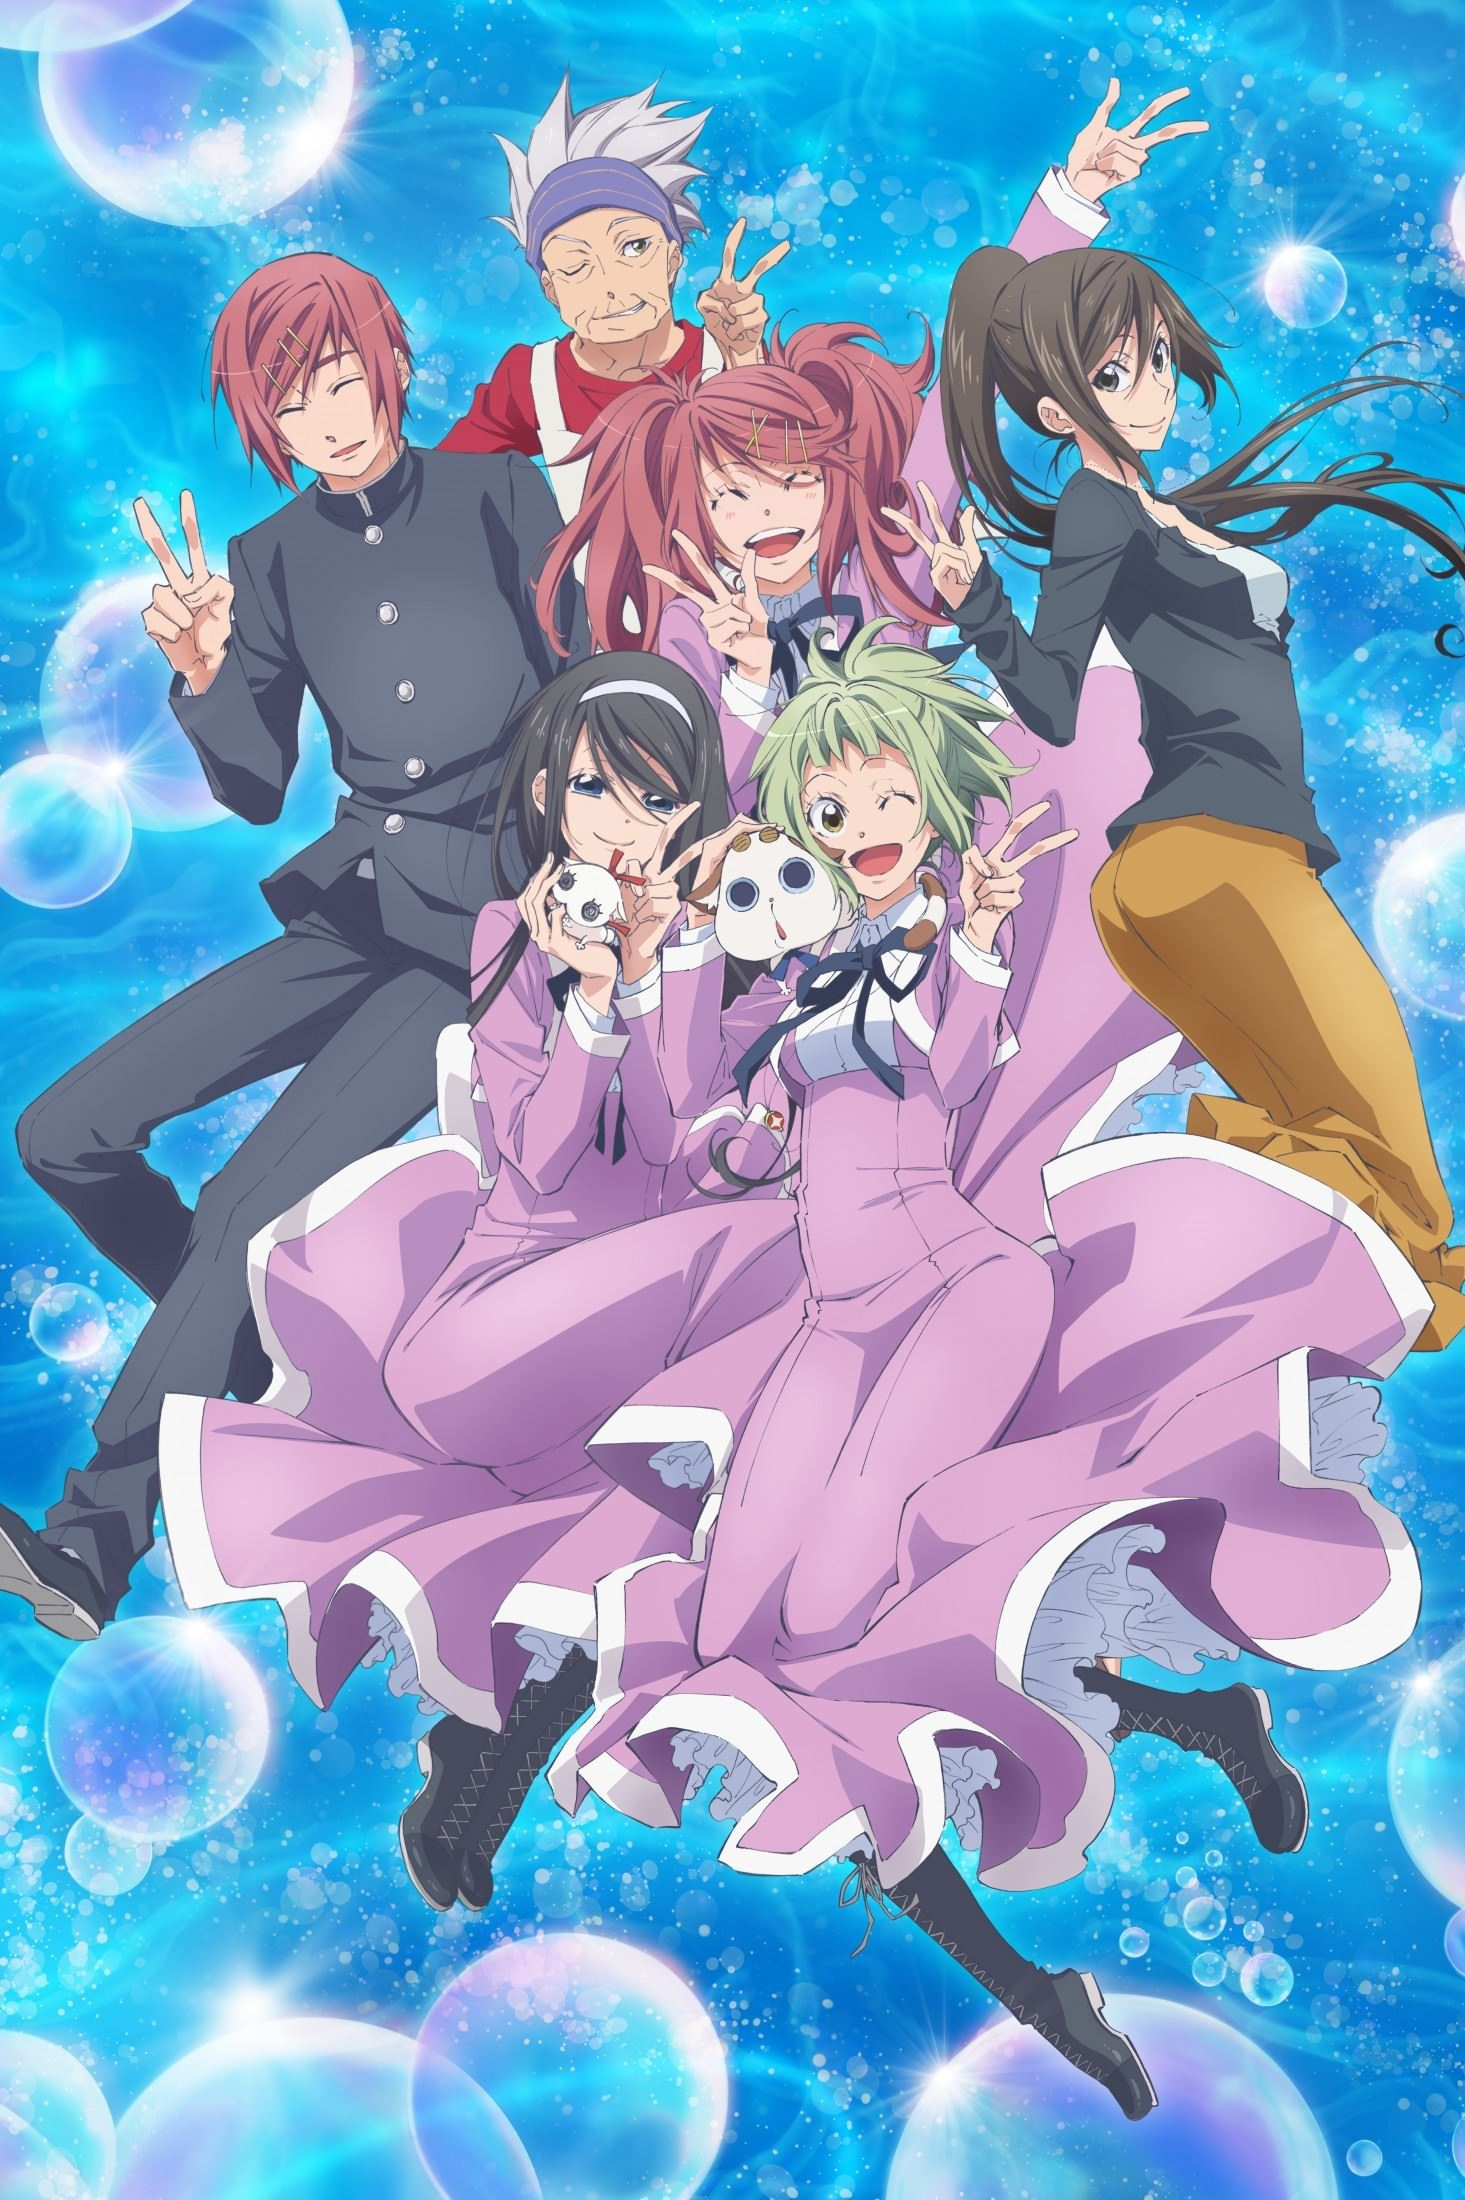 Дайверы 2 / Amanchu! Advance [Сезон 2, Серия 1-12 из 12] 2018